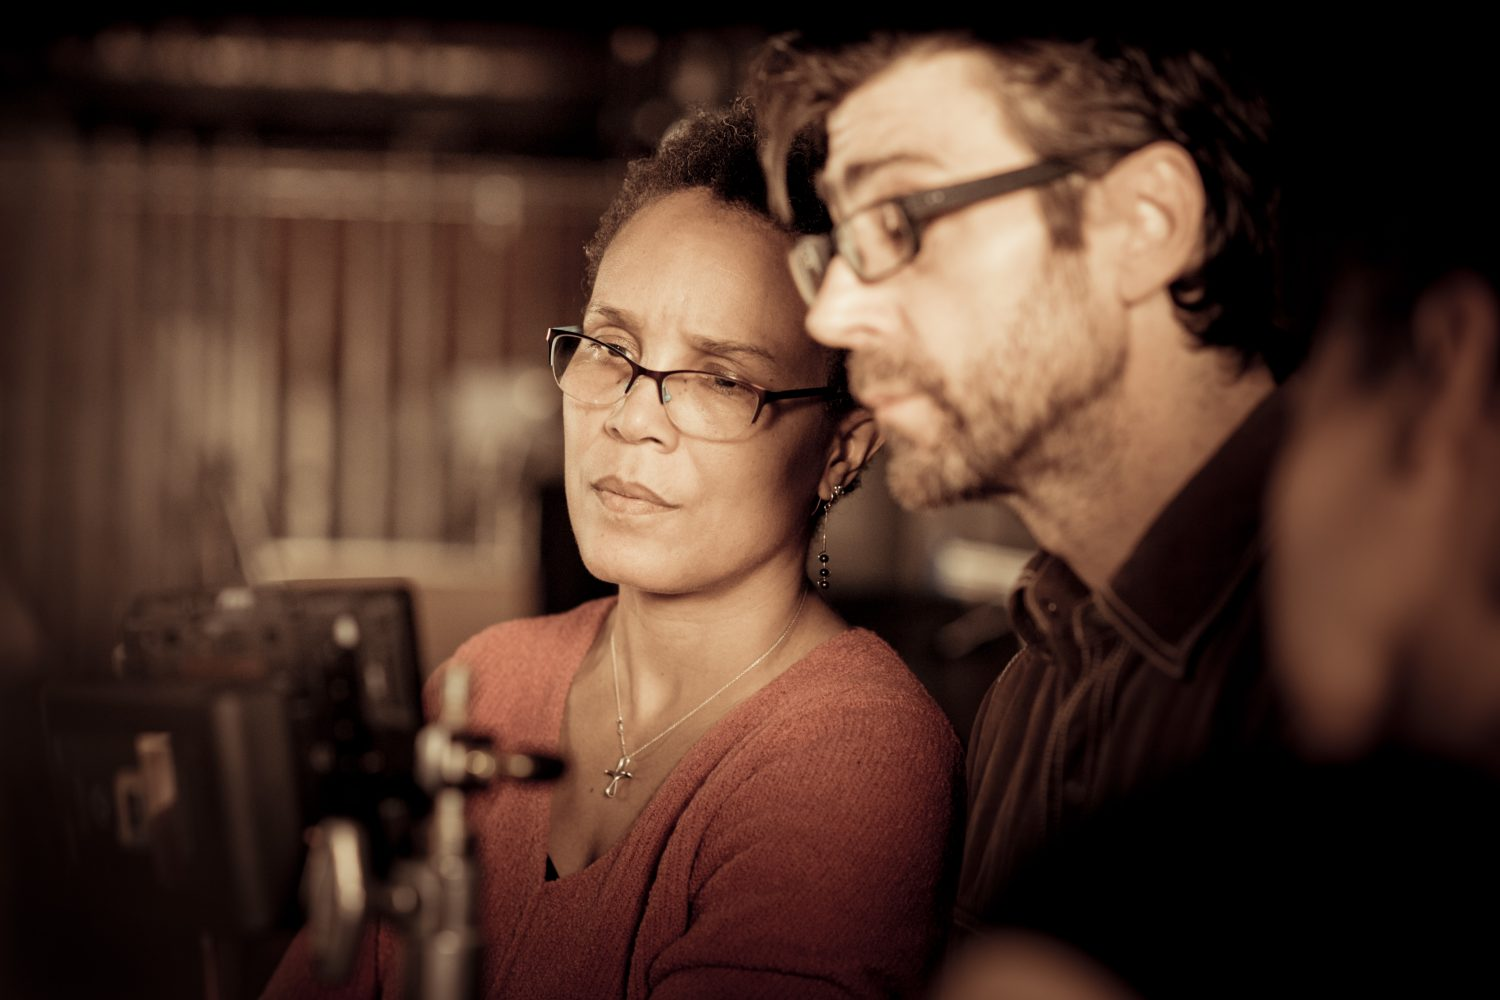 Beginning this fall, the Wesleyan Documentary Project will be led by Tracy Heather Strain and Randall MacLowry '86, the duo behind the Boston-based documentary film company The Film Posse.